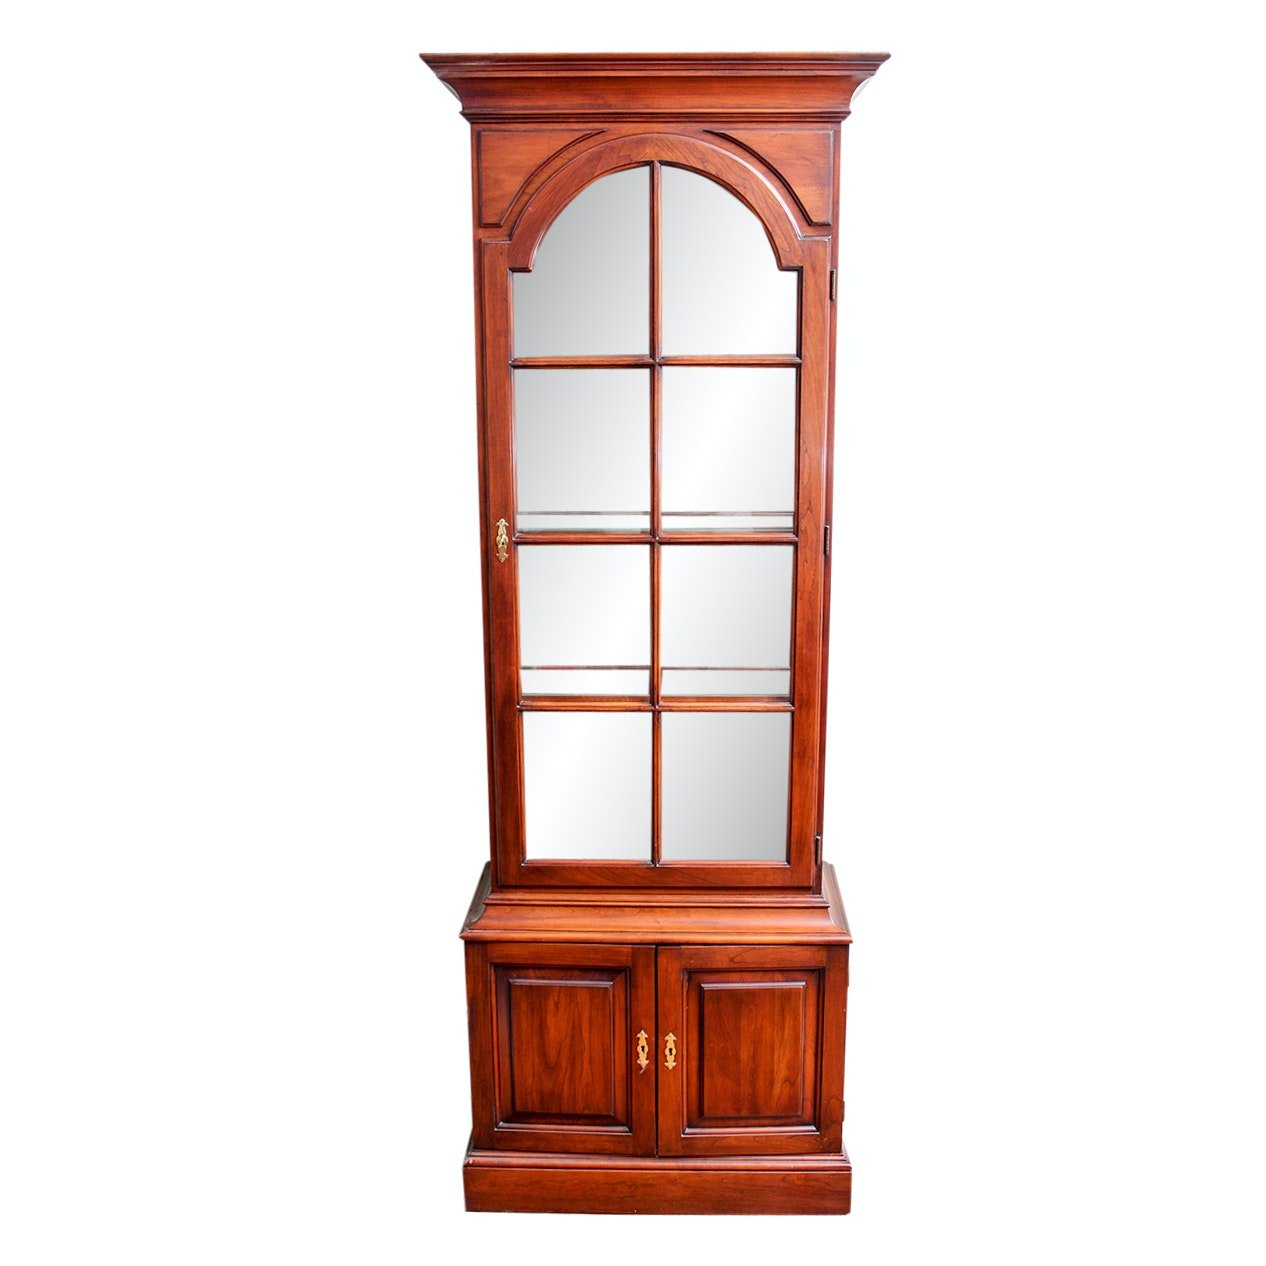 Centennial Cherry Illuminated Display Hutch